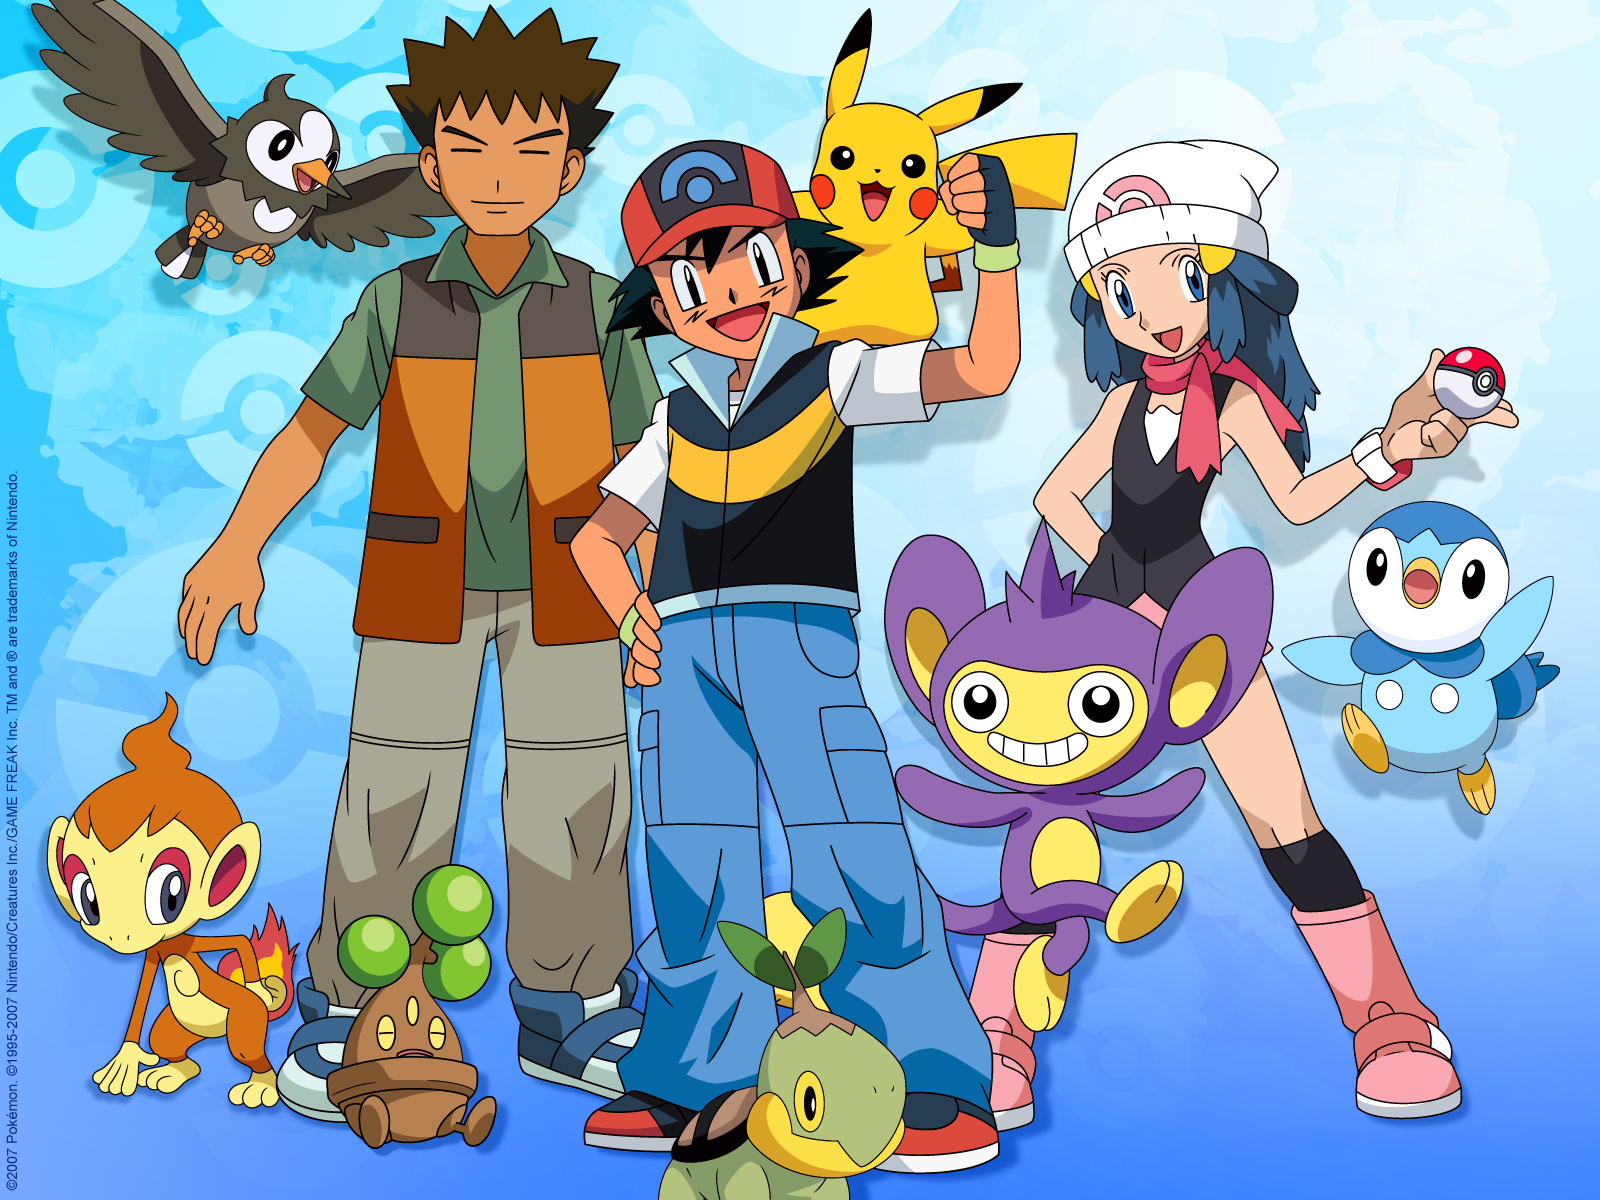 Pokemon wallpapers high quality download free - High quality anime pictures ...